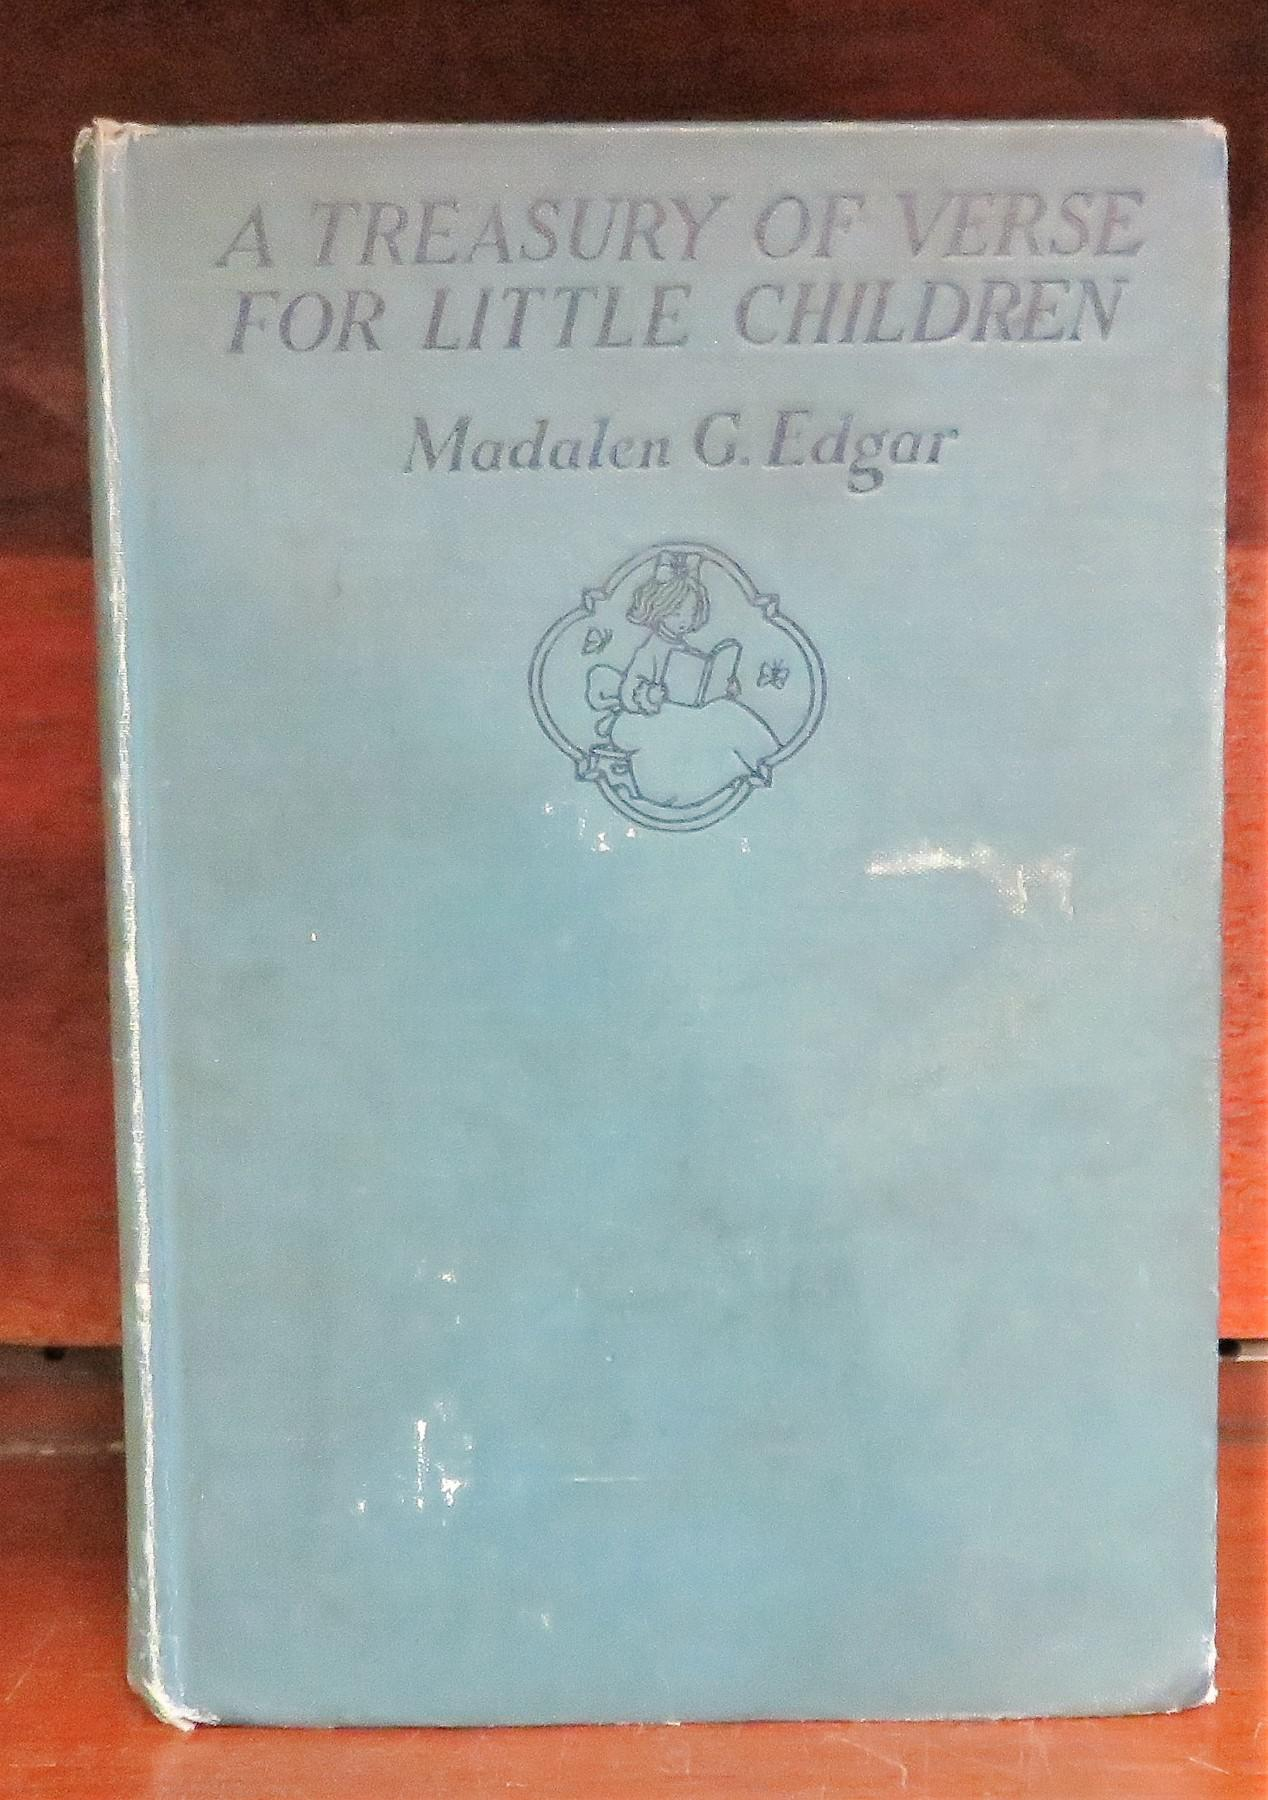 A Treasury of Verse for Little Children